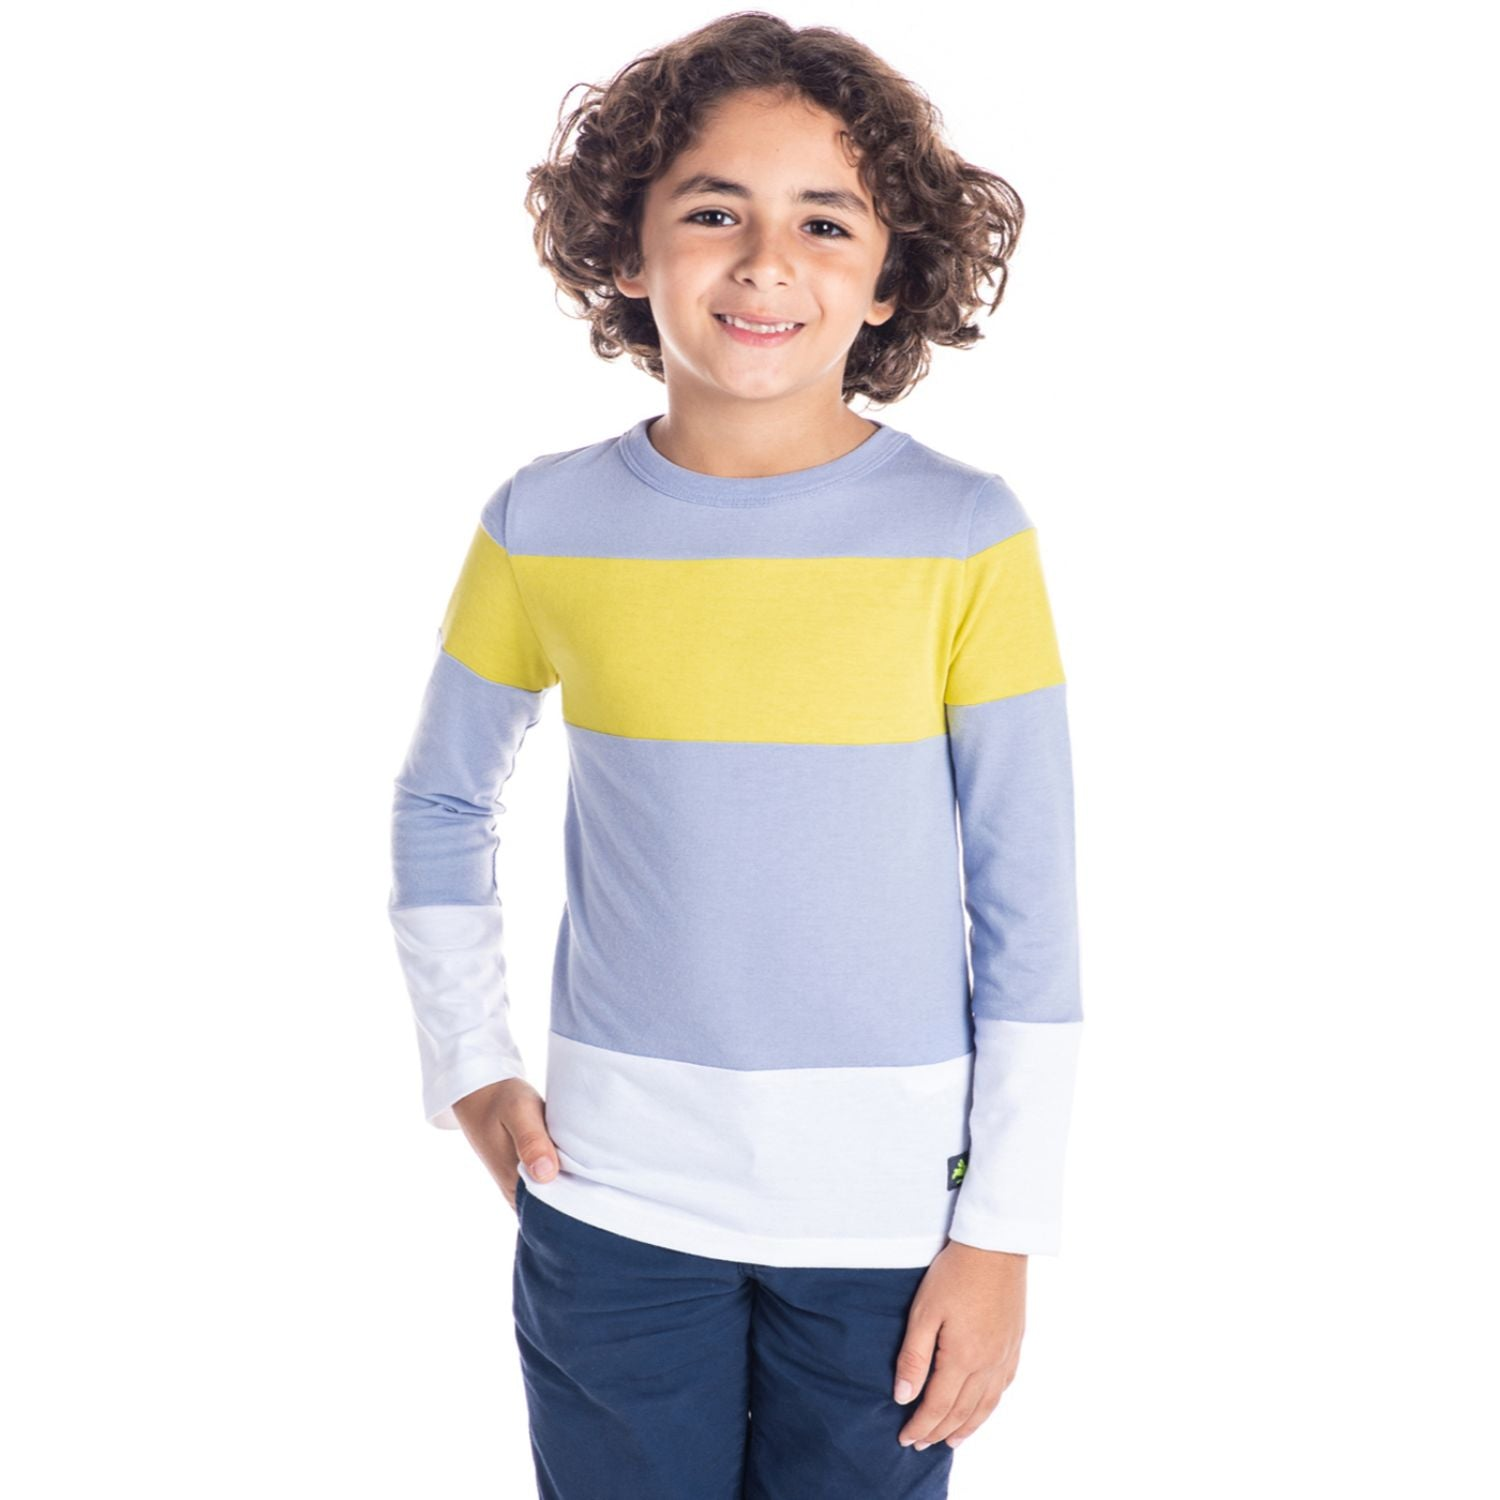 Easel Tee for Boys